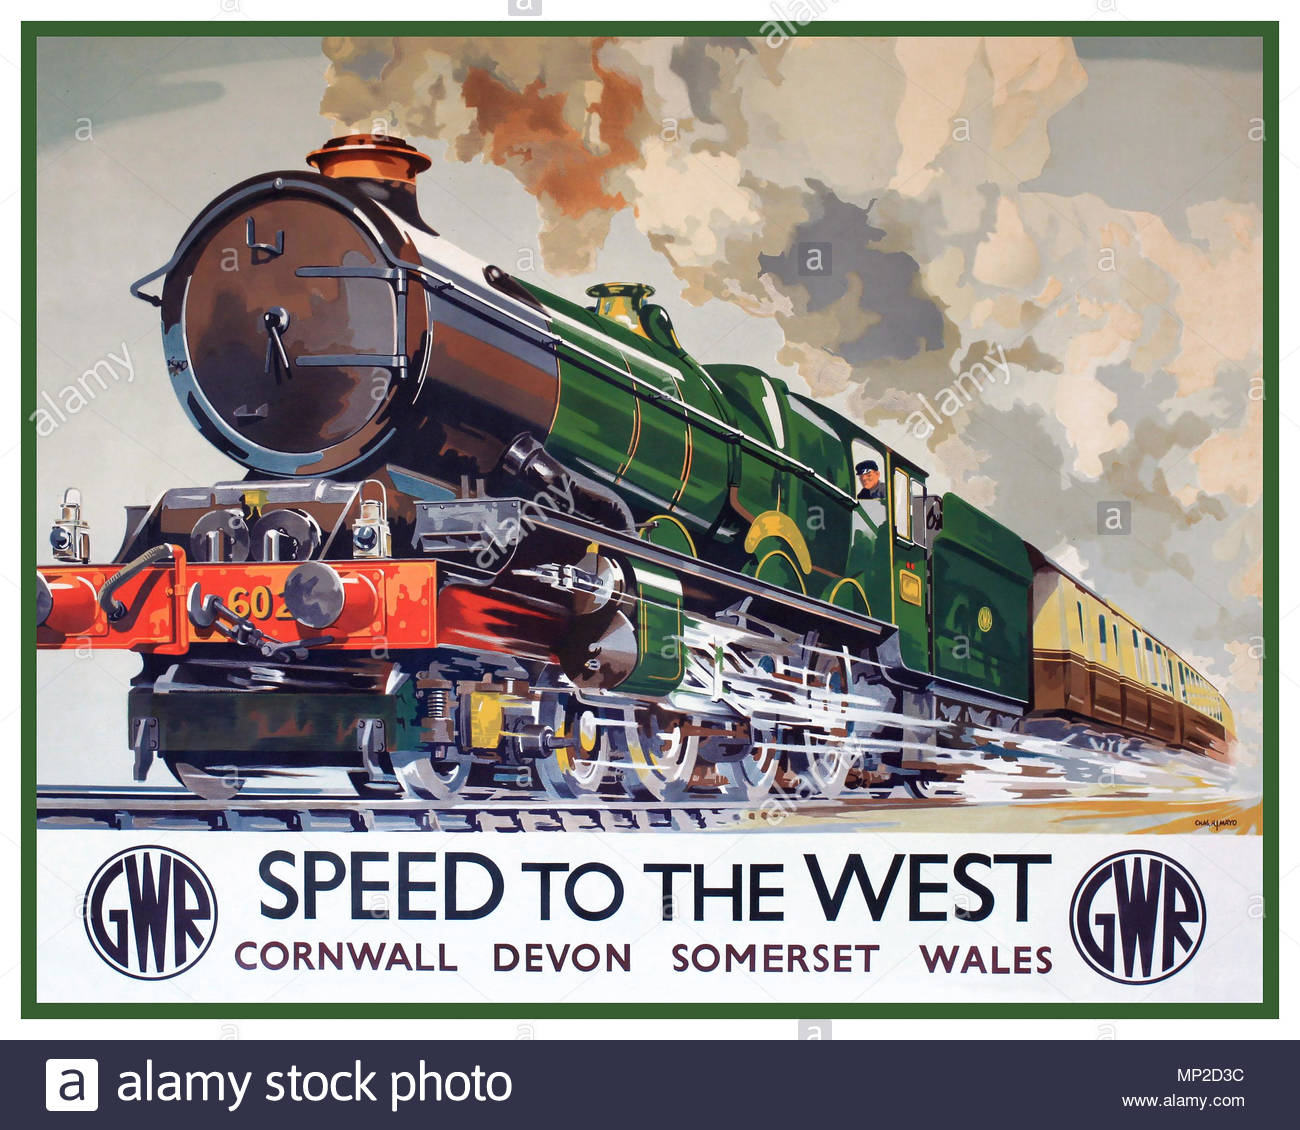 Derby Locomotive Works Railway Old Advert Poster Rolling Stock Picture Photo